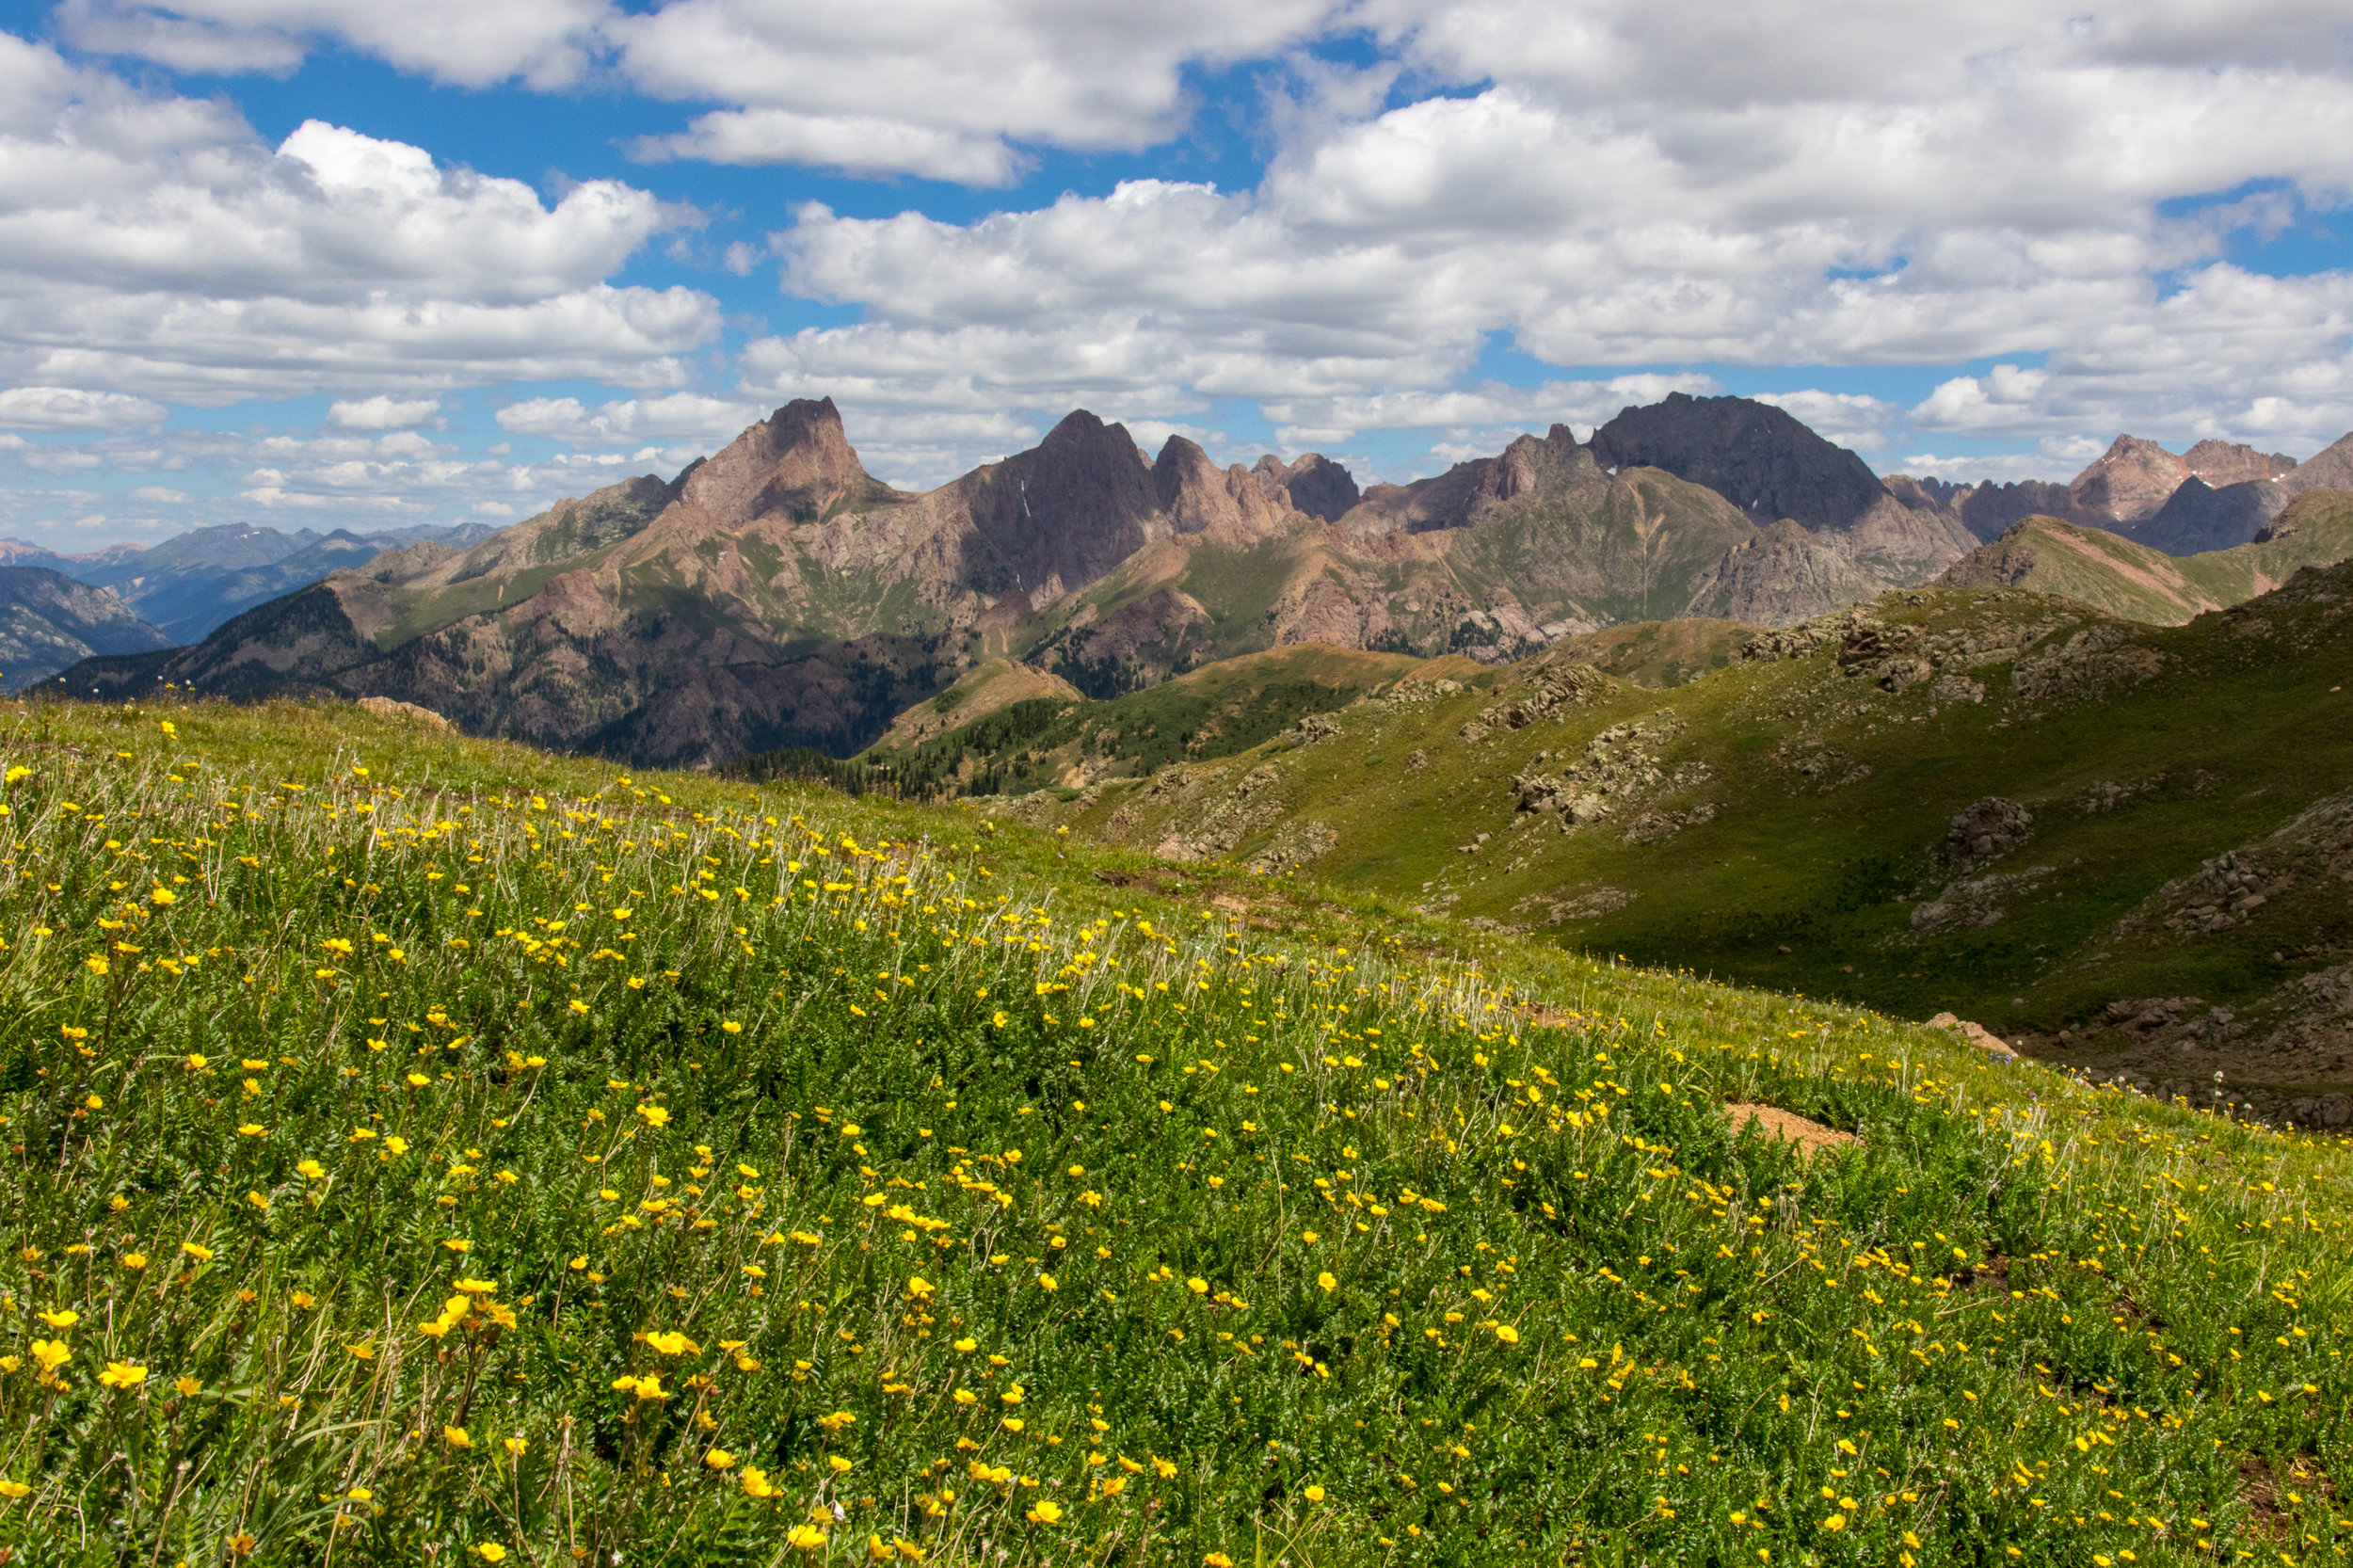 Ridge covered with Wildflowers